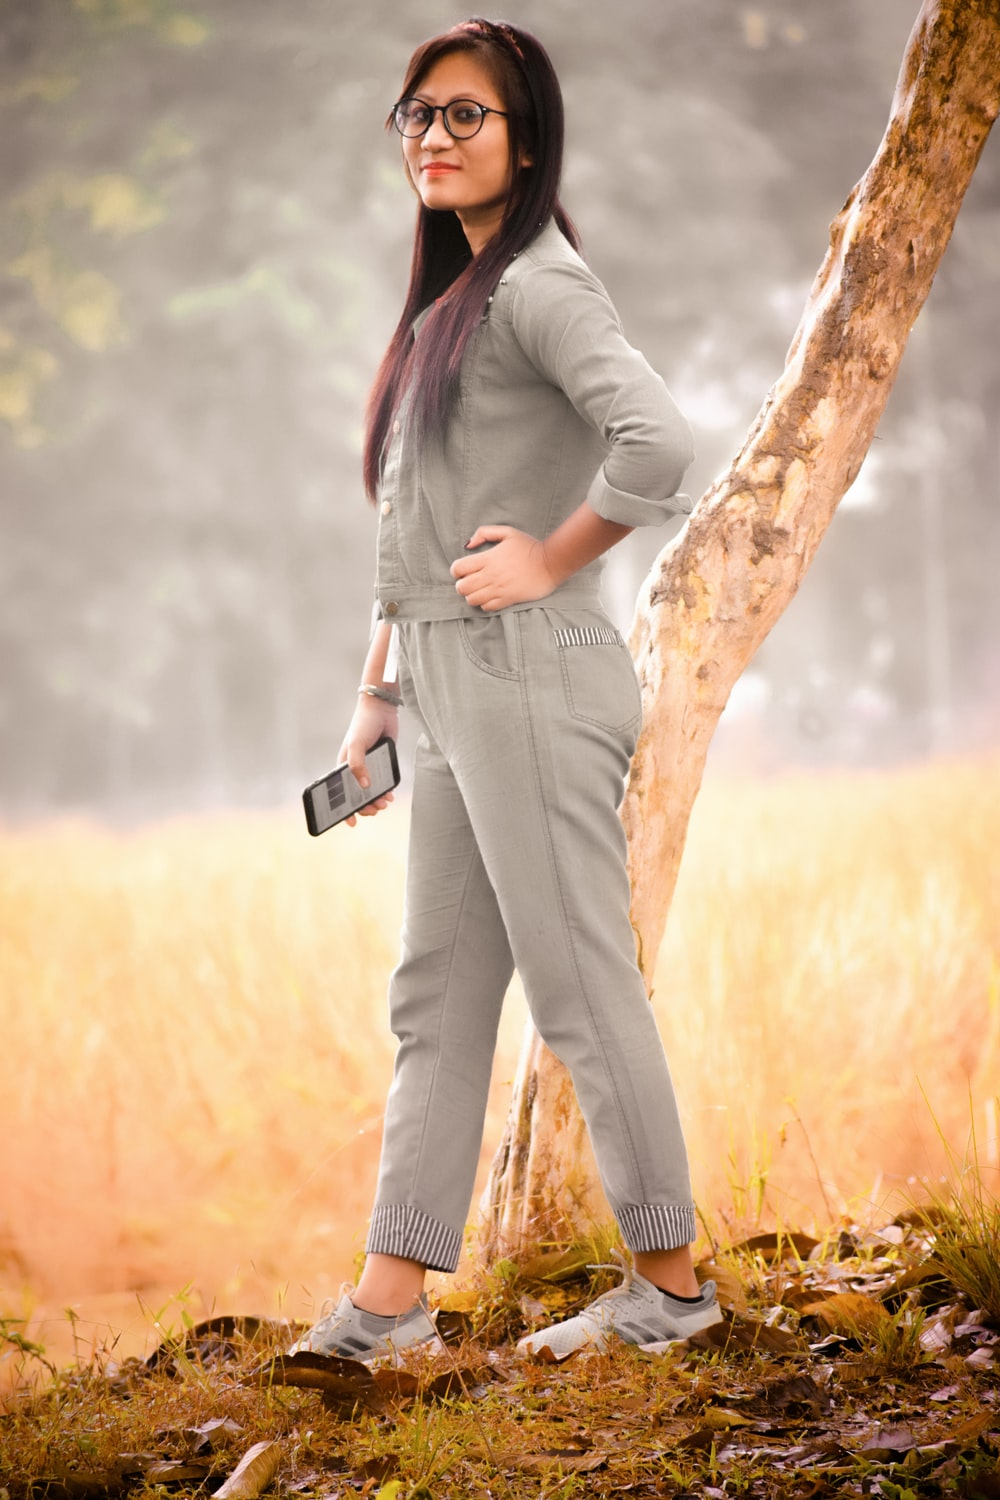 woman in gray jacket and brown pants standing on brown tree trunk during daytime